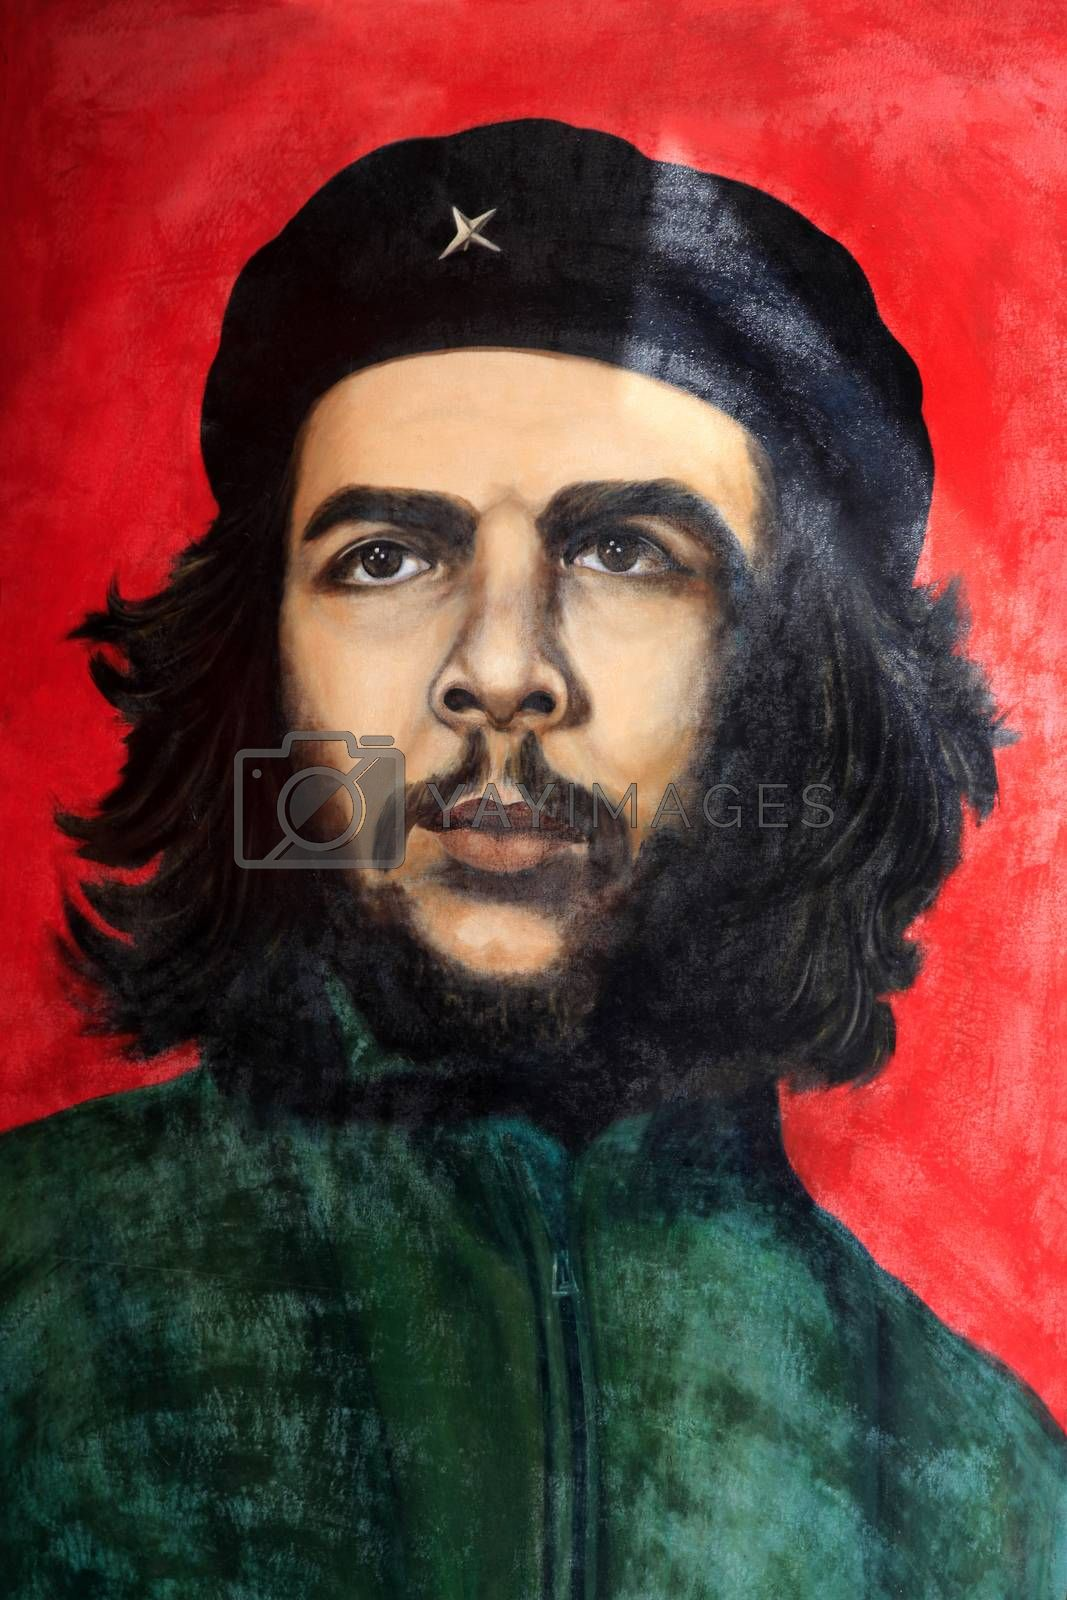 Royalty free image of  Che Guevara painting in Old Havana by friday